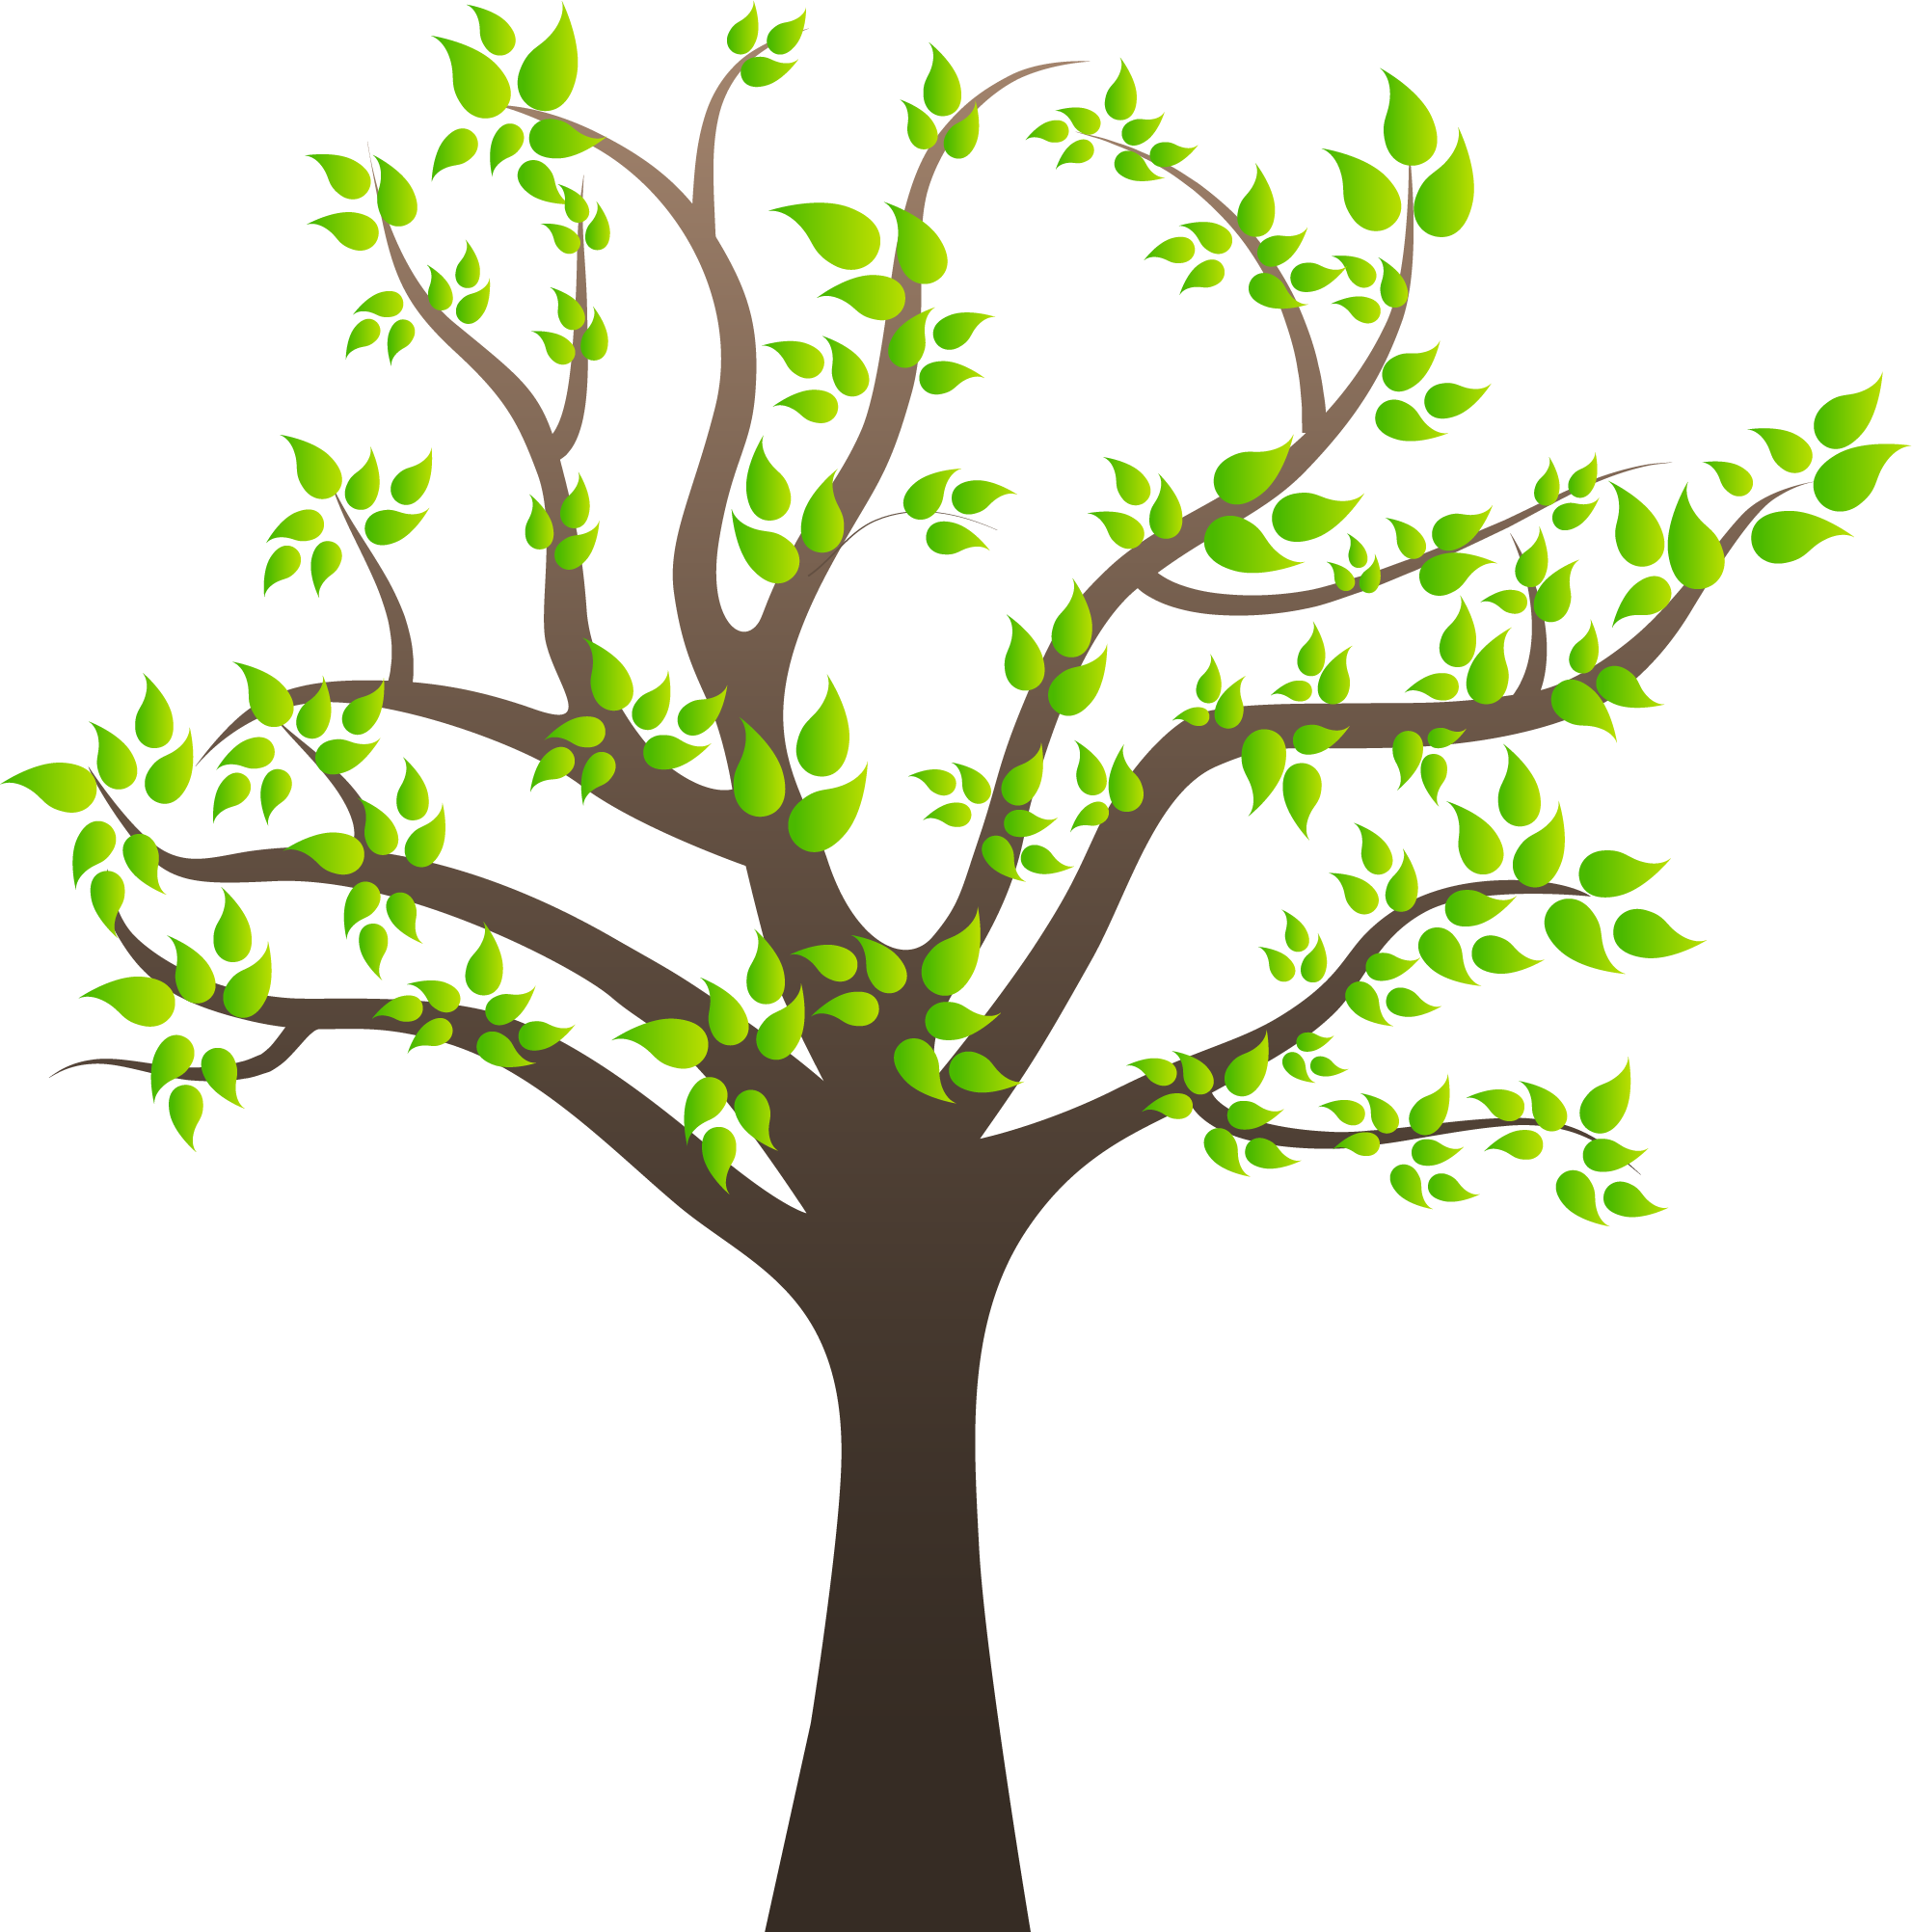 Transparent tree clipart clip free Tree PNG Images Quality Transparent Pictures | PNG Only clip free